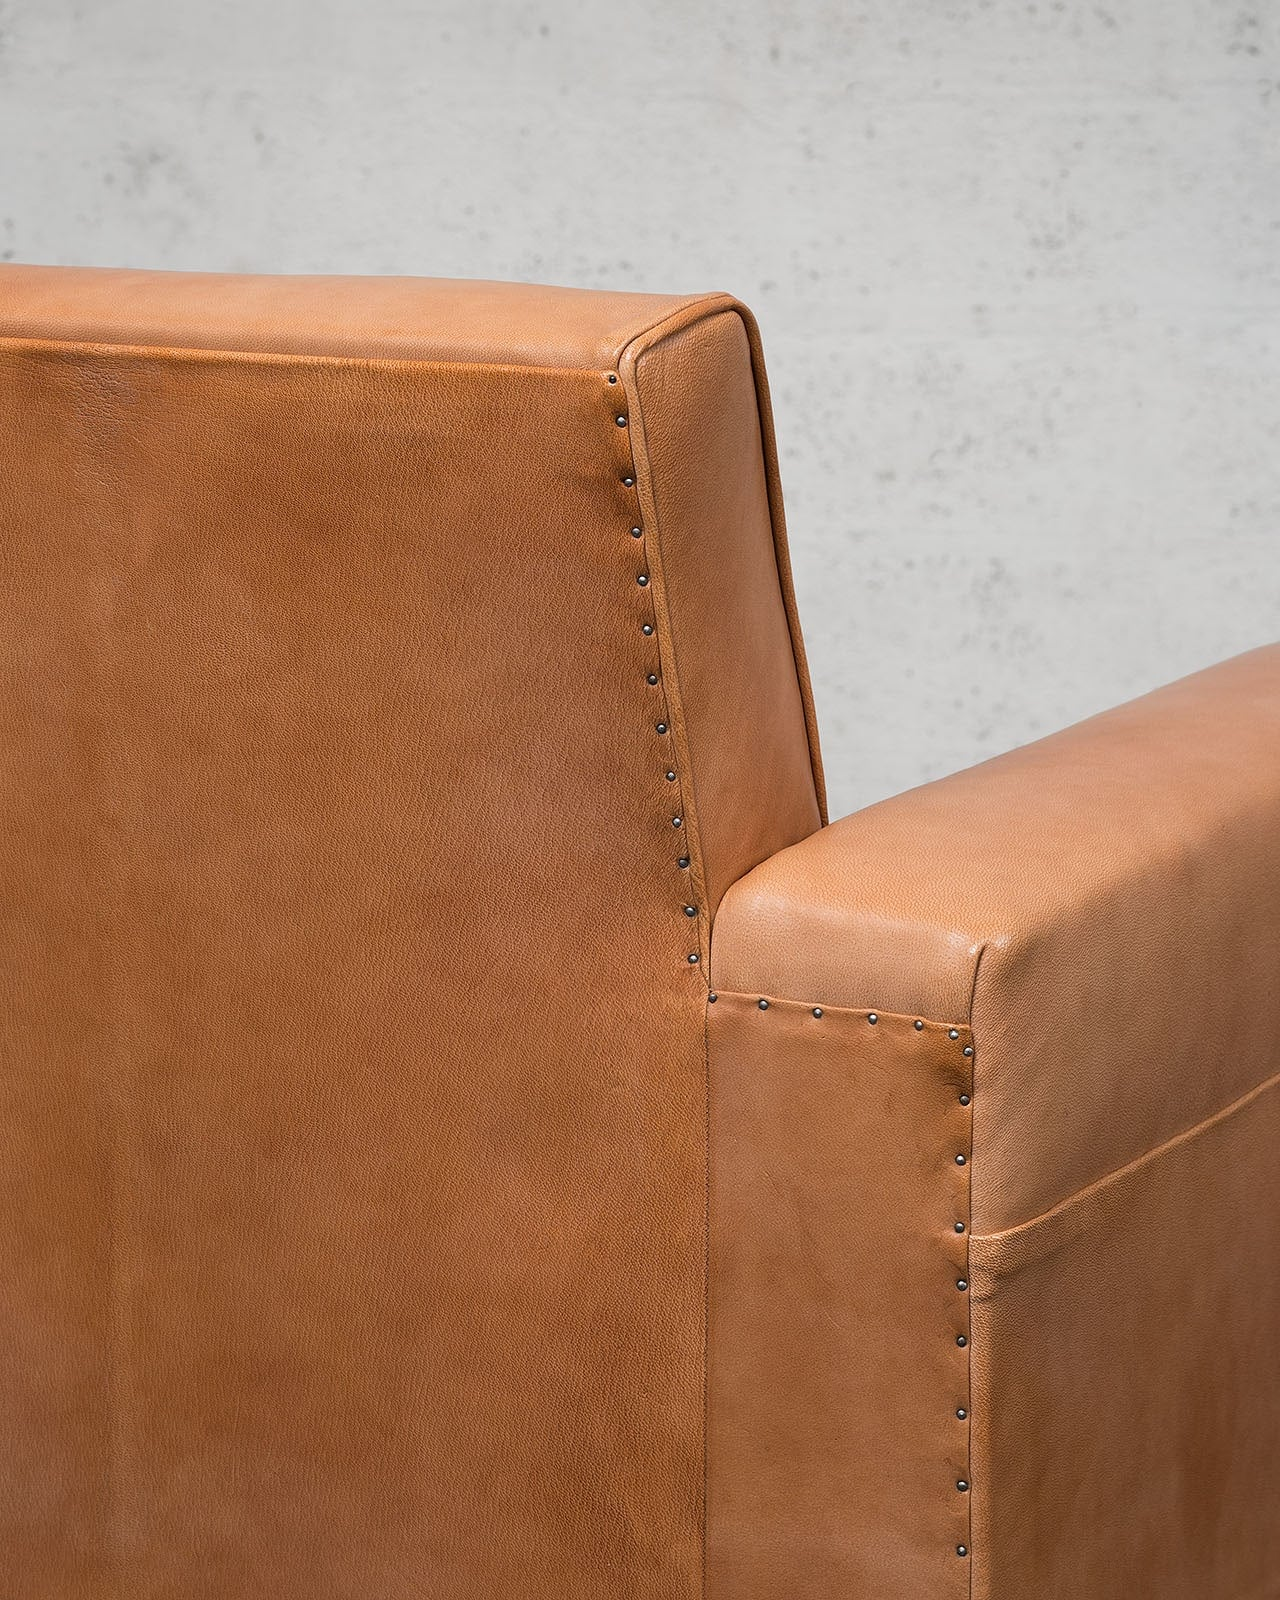 Jean-Charles Moreux, Rare pair of leather armchairs, vue 04